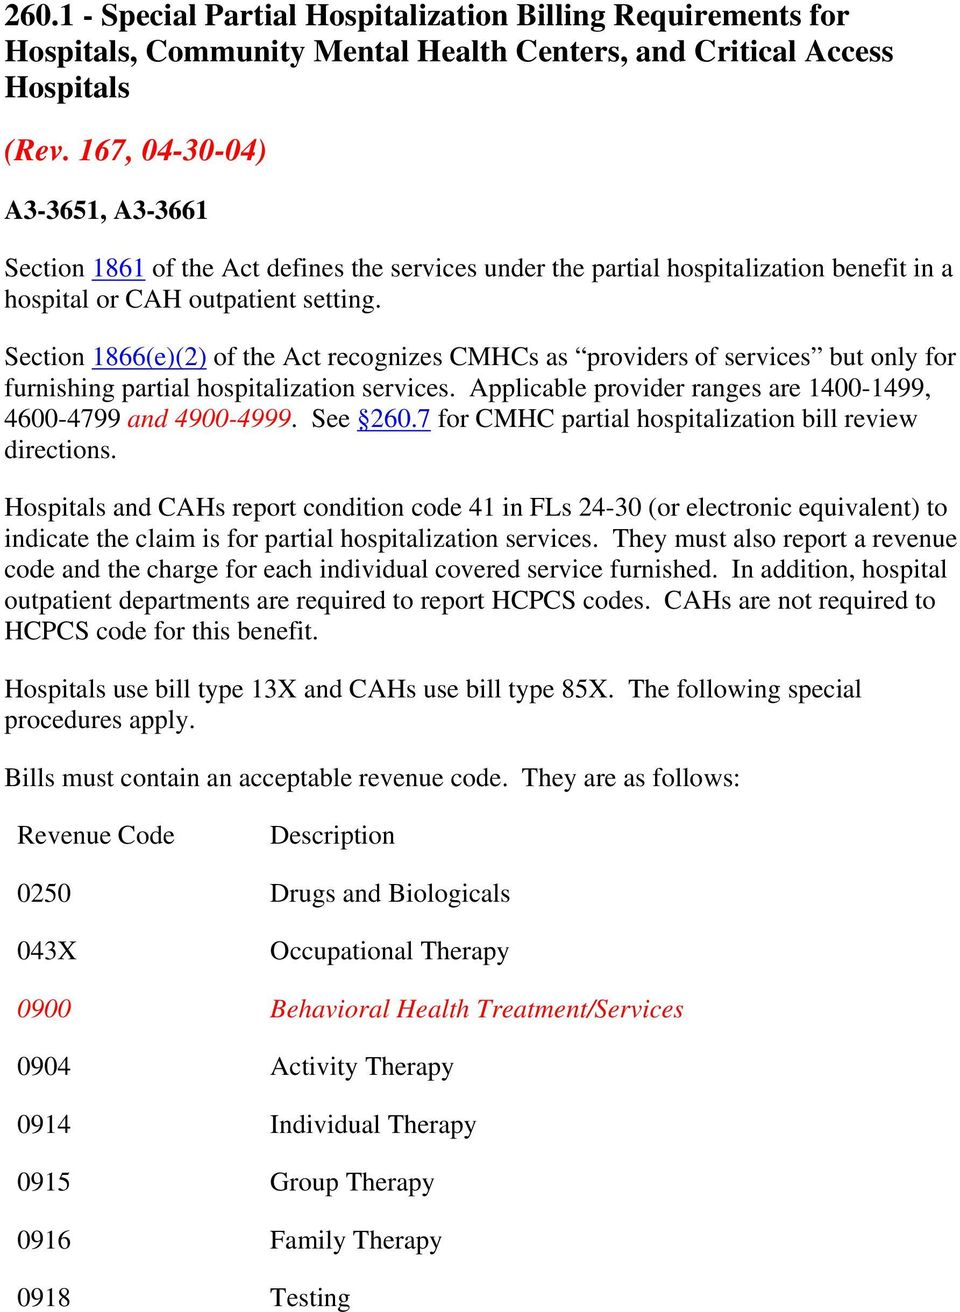 Section 1866(e)(2) of the Act recognizes CMHCs as providers of services but only for furnishing partial hospitalization services. Applicable provider ranges are 1400-1499, 4600-4799 and 4900-4999.